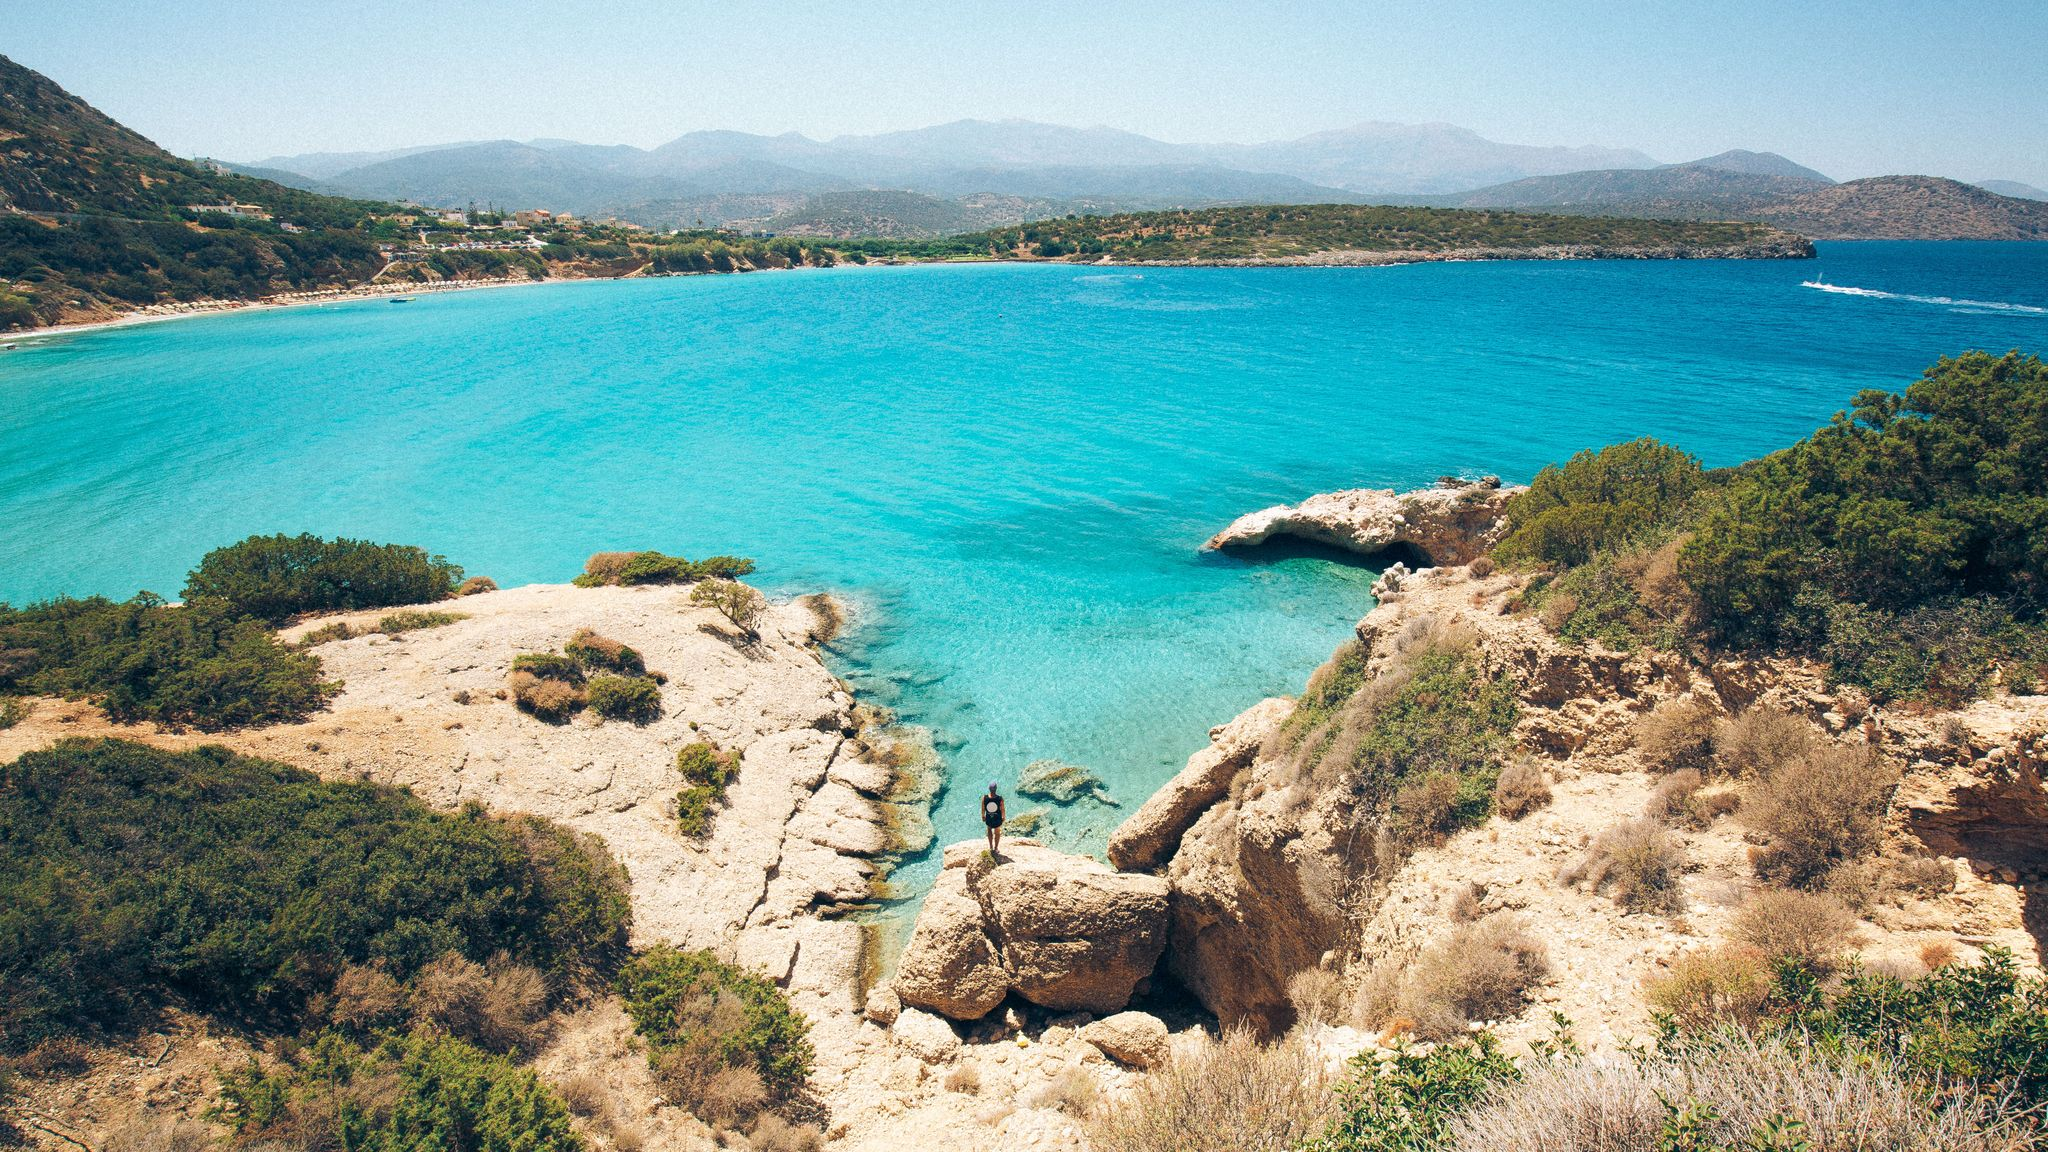 Could Crete overtake Mykonos and Santorini as the A-list Greek island of choice?